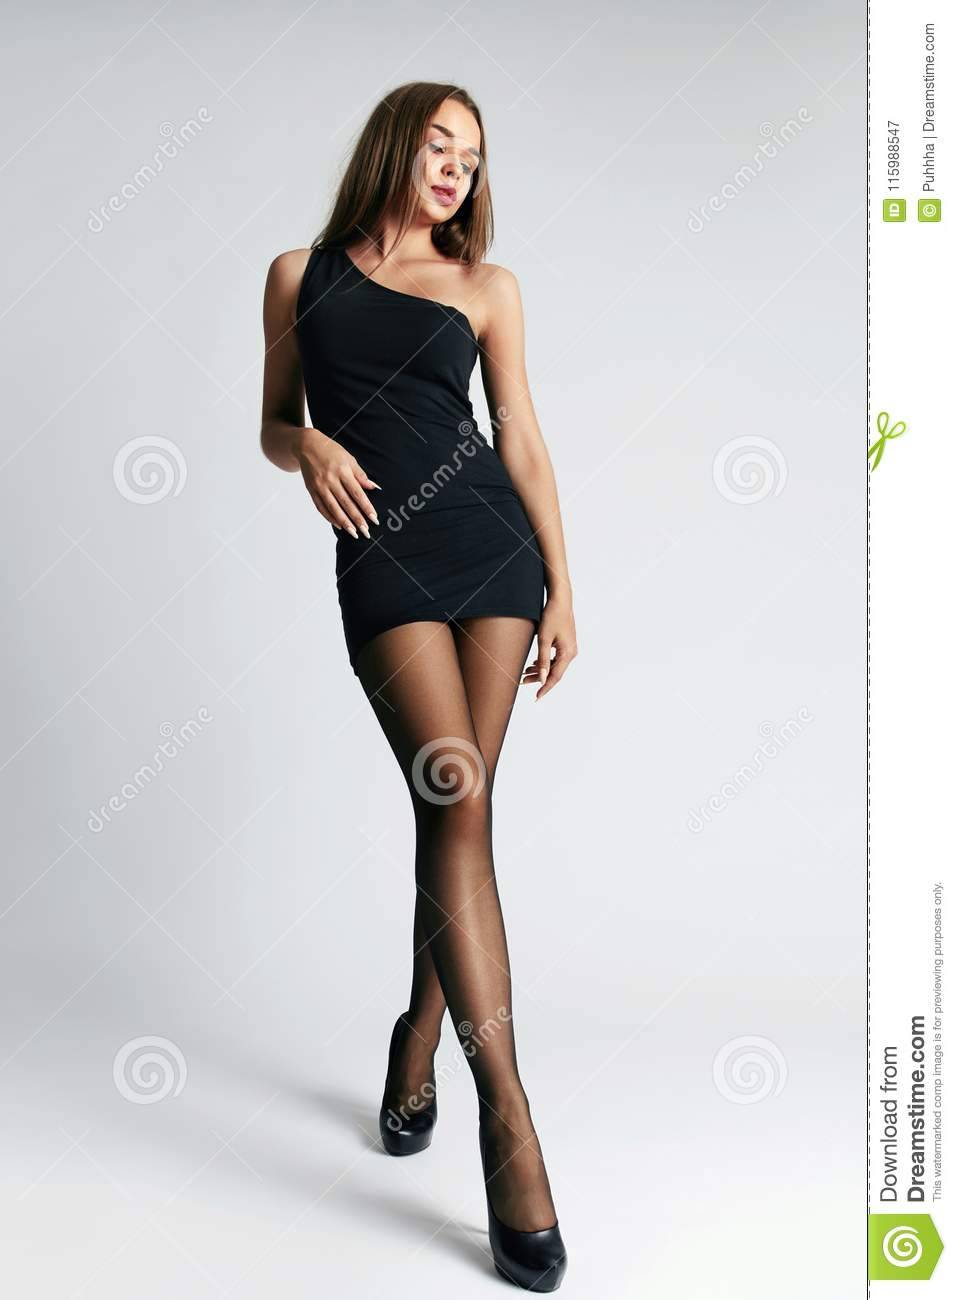 Beautiful Woman In Black Dress And Stockings Stock Image - Image Of Wear, Tights -4901